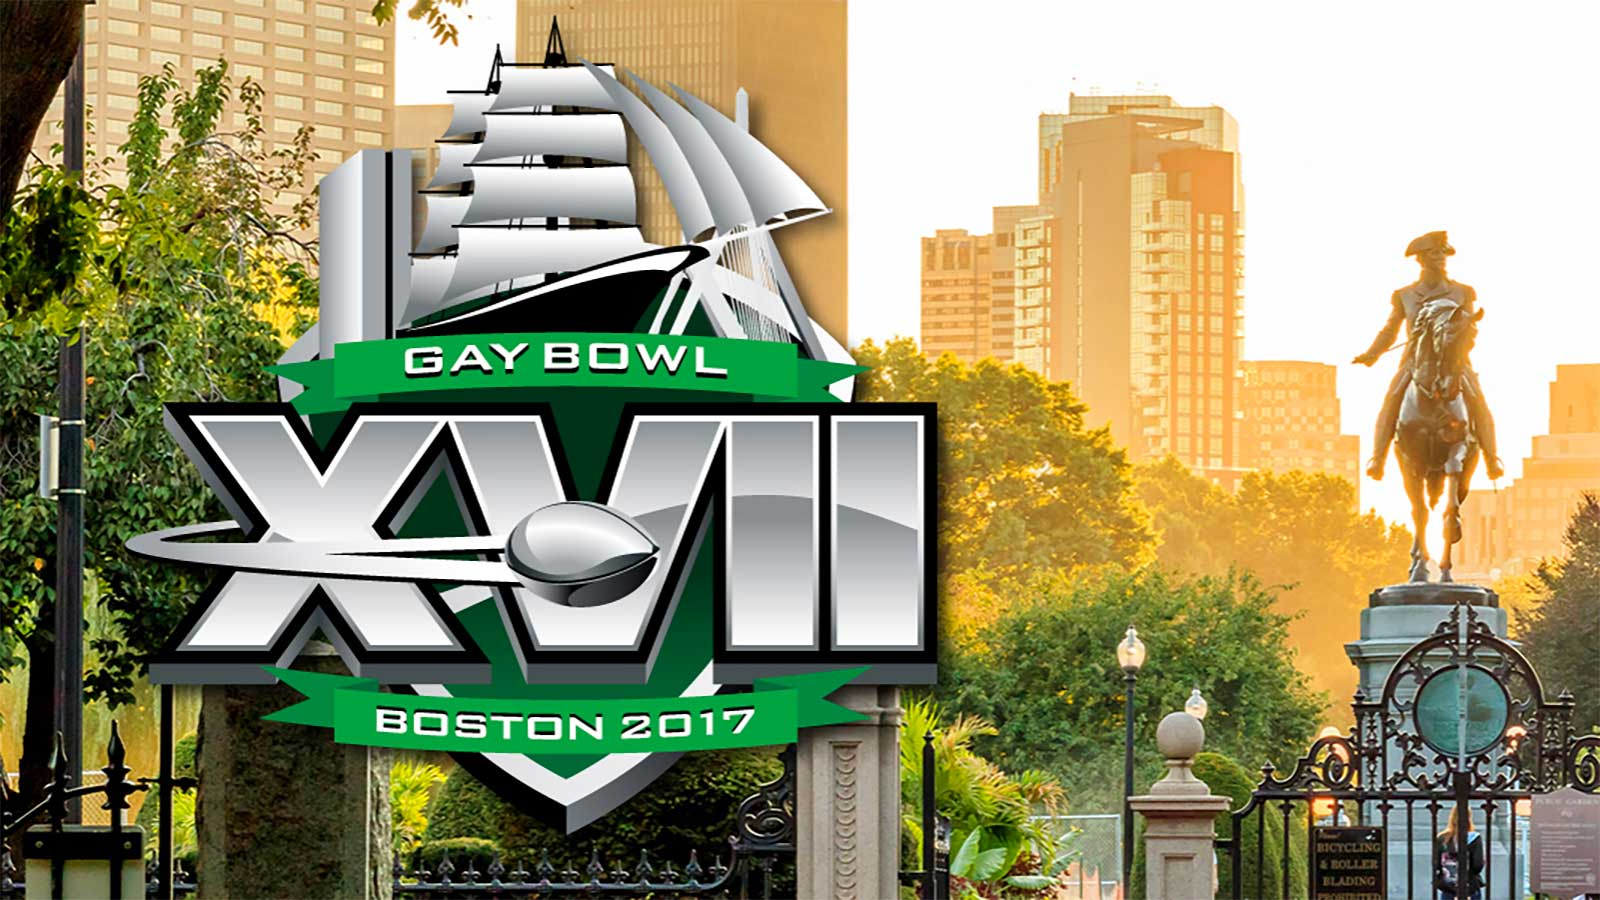 Bain Capital Sponsoring Gay Bowl XVII